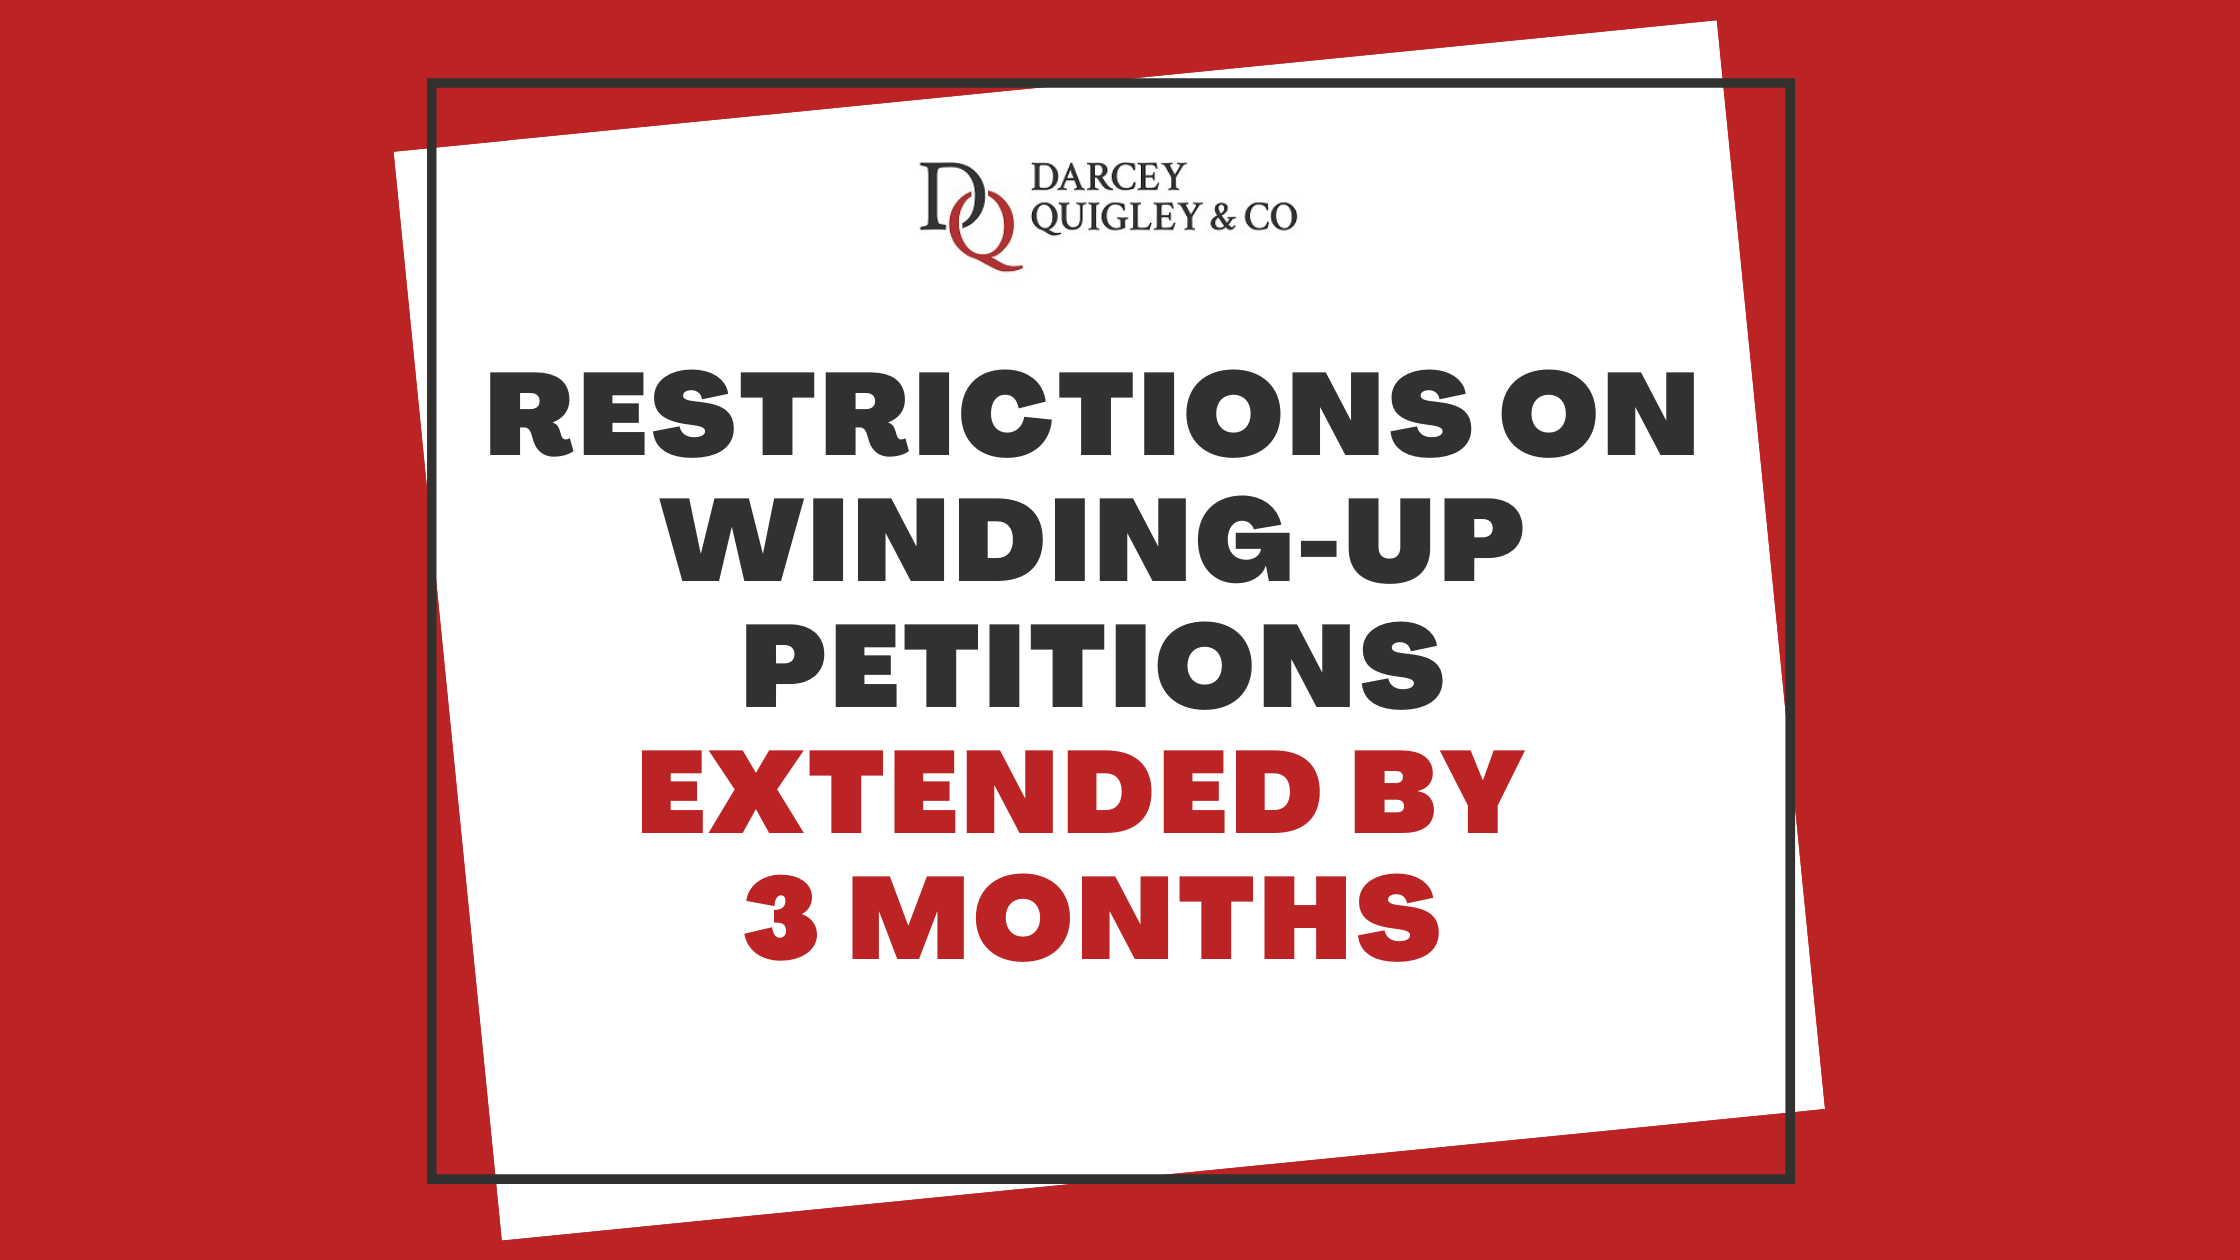 UK Government Further Extends Temporary Restrictions on Winding-up Petitions